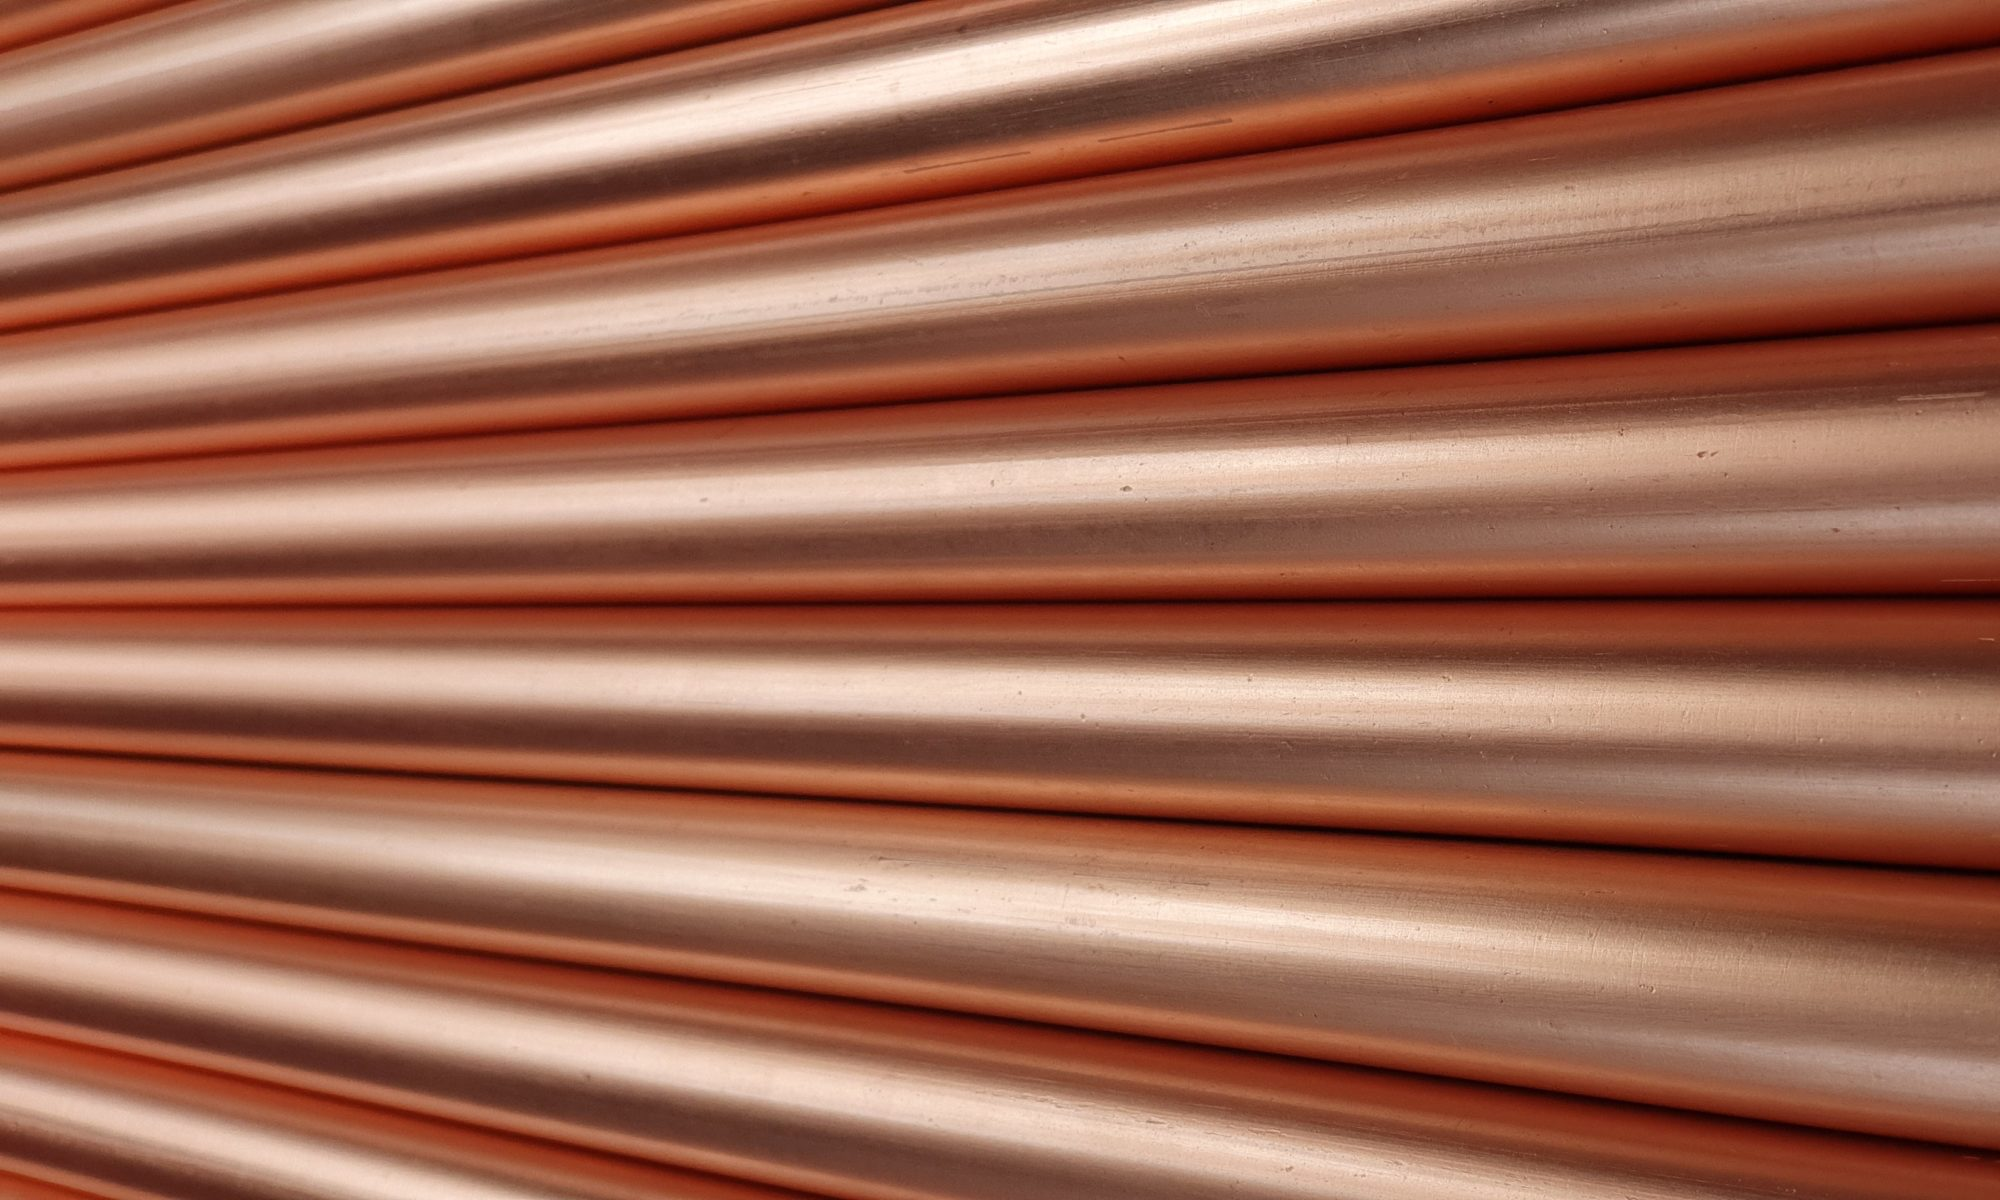 Conduit lighting - Copper conduit